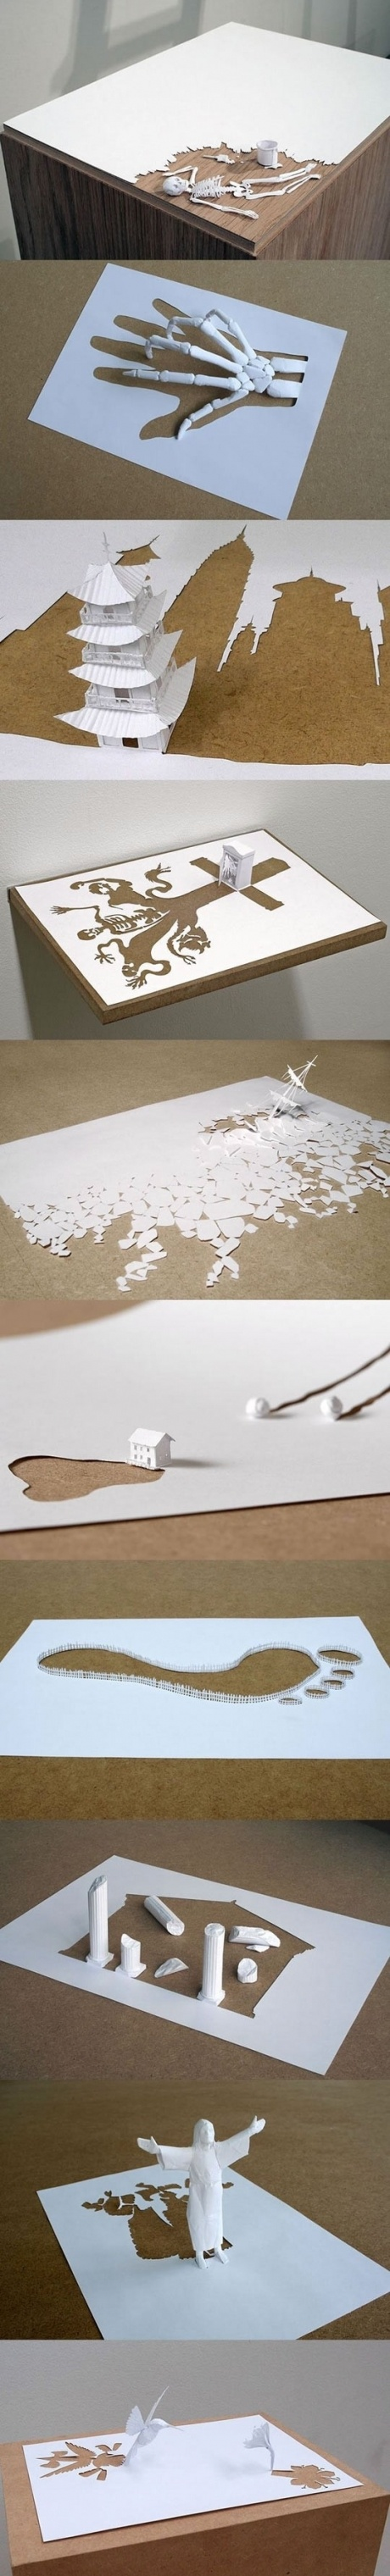 Awesome Paper Art